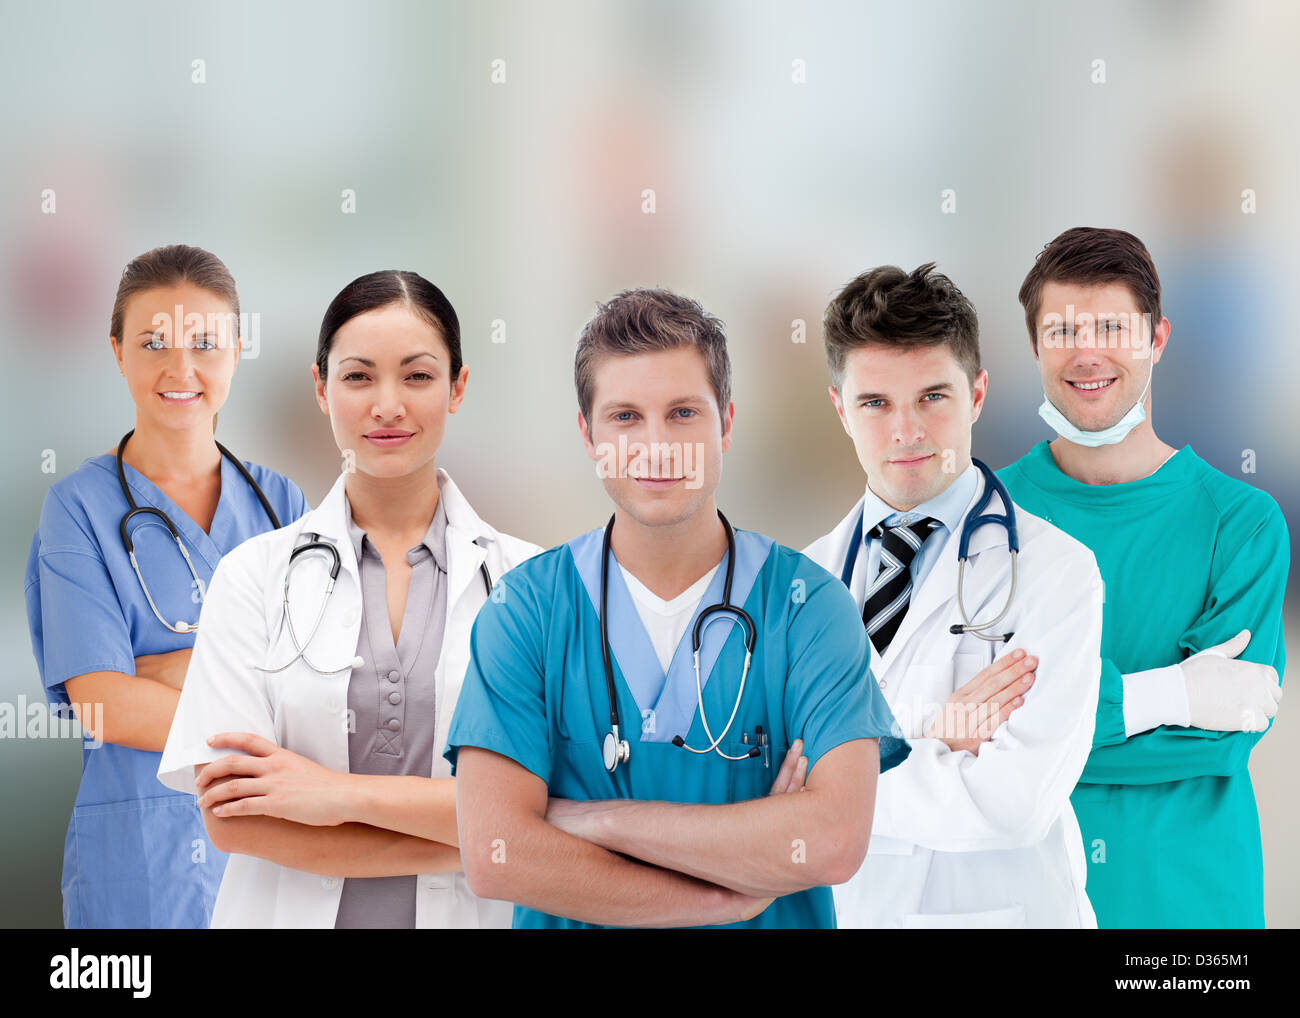 Smiling hospital workers standing in line - Stock Image